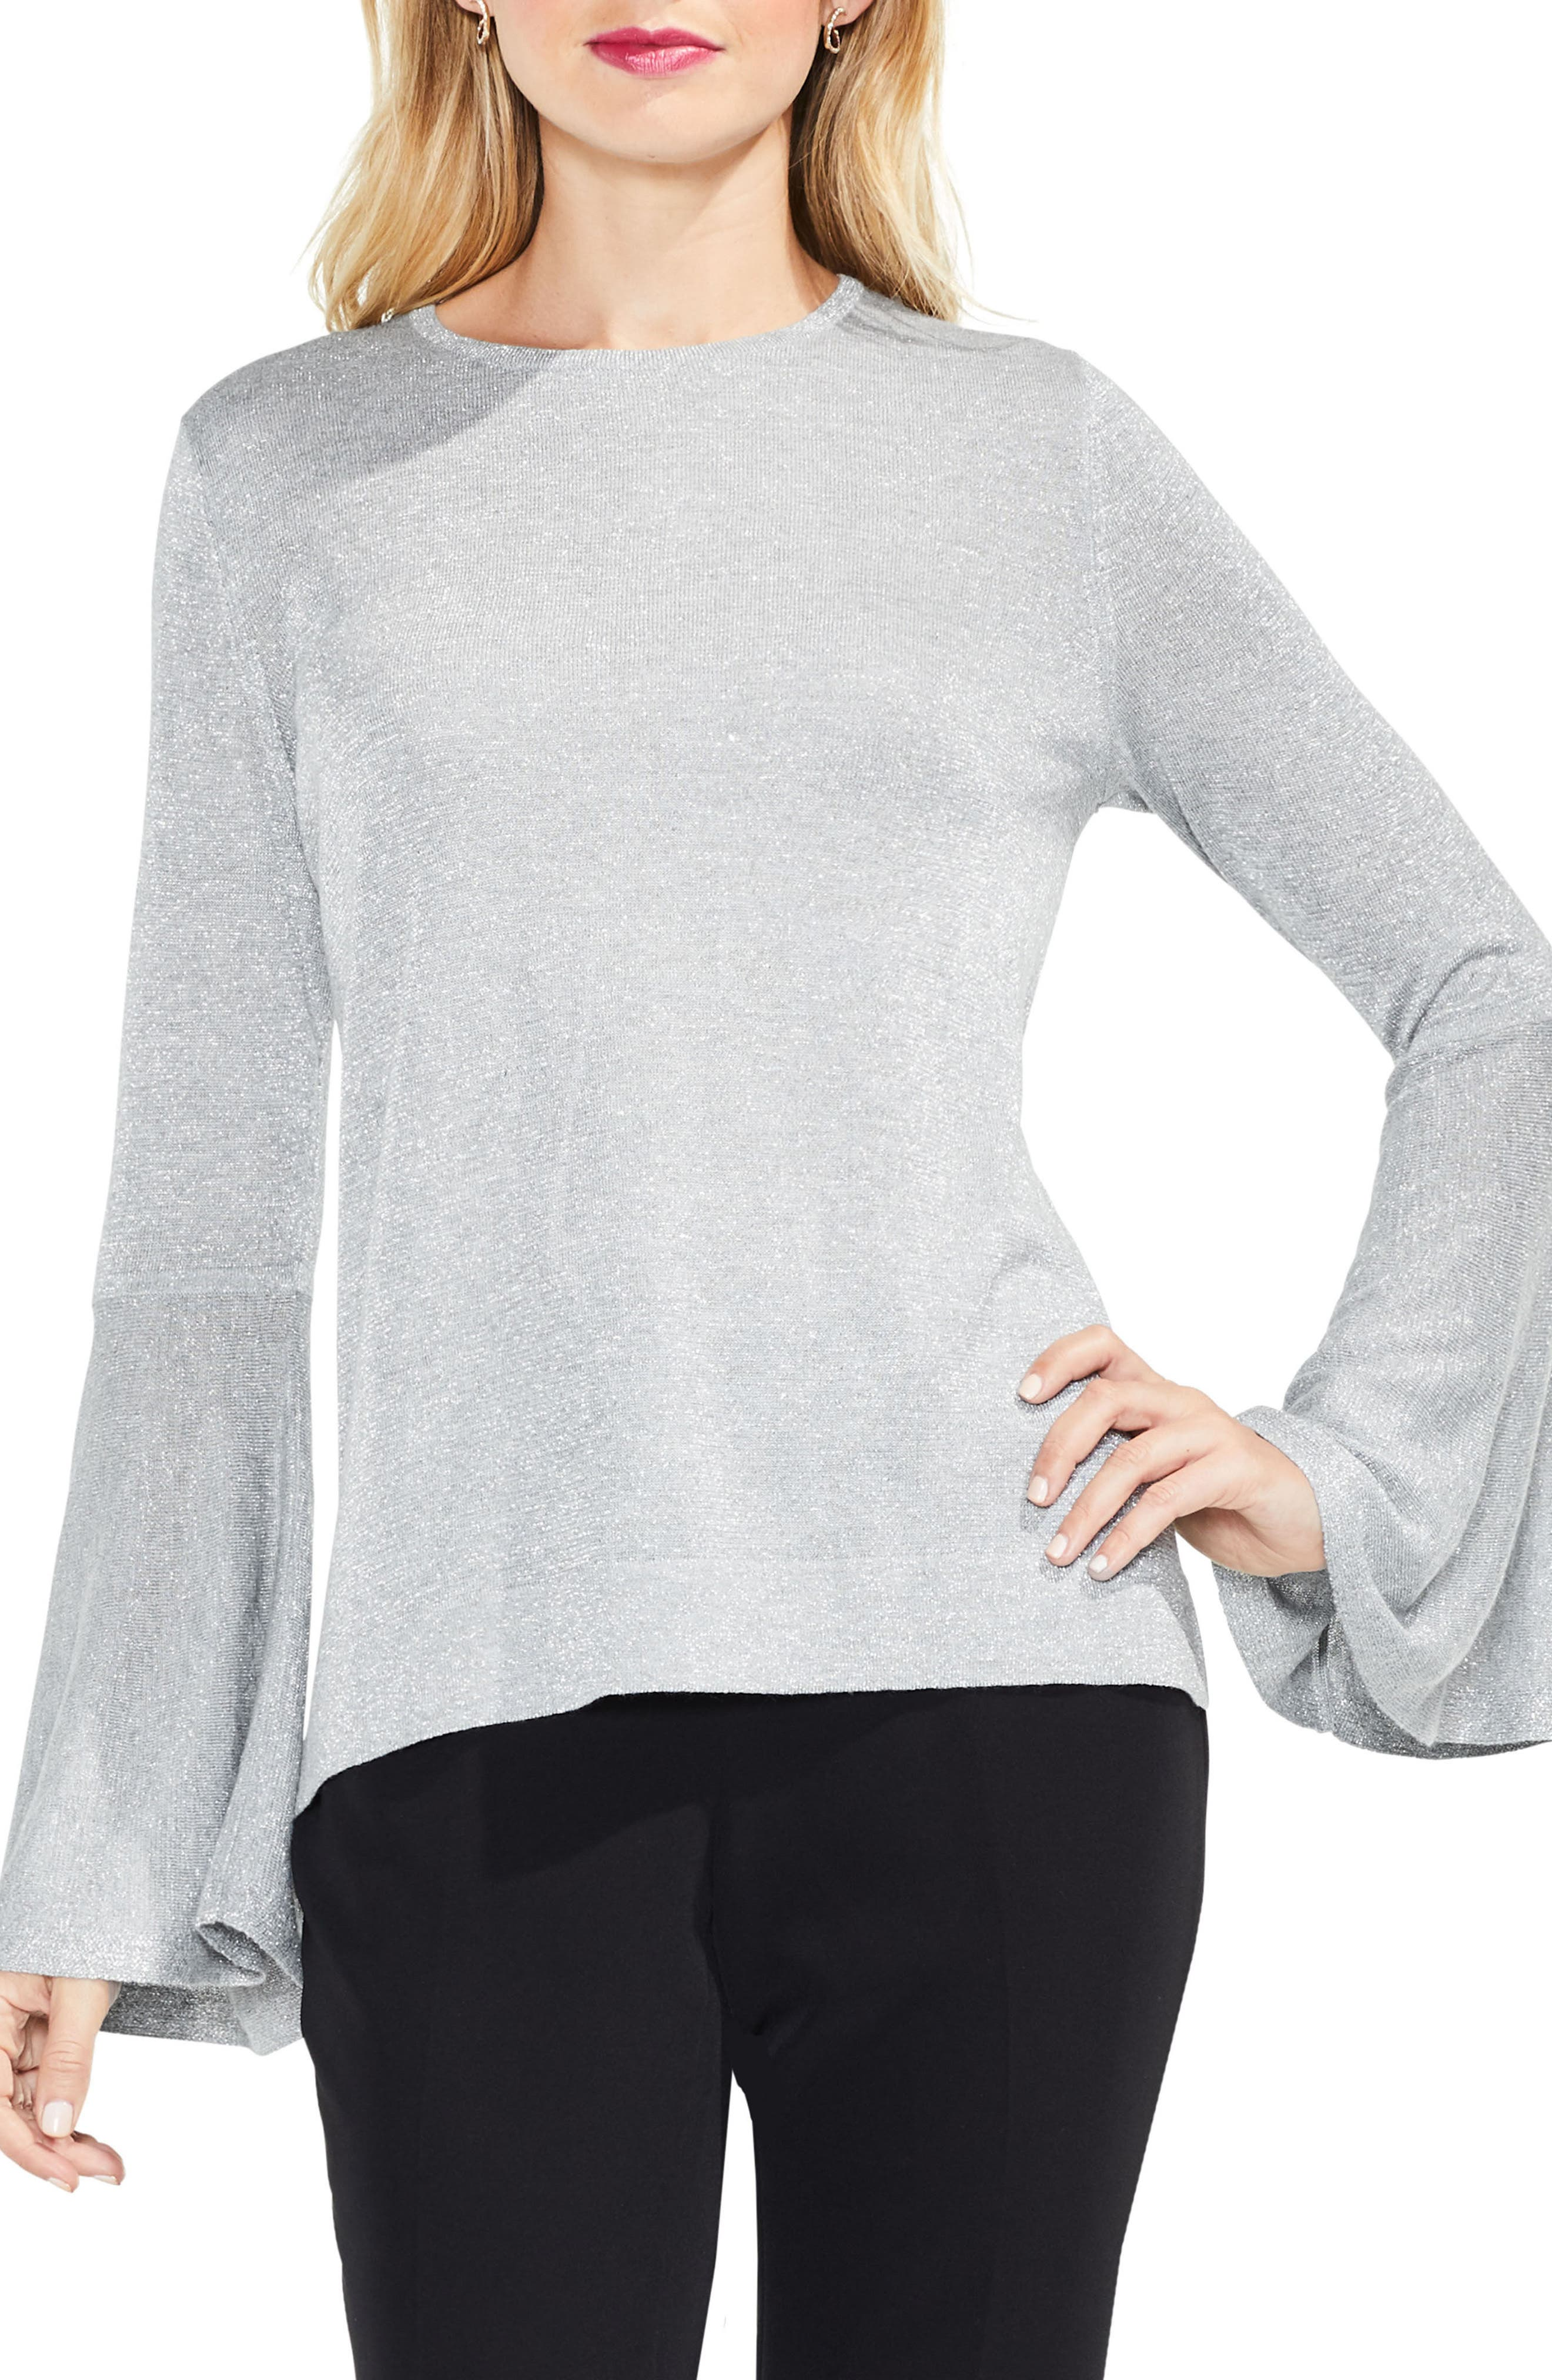 Alternate Image 1 Selected - Vince Camuto Bell Sleeve Sweater (Regular & Petite)